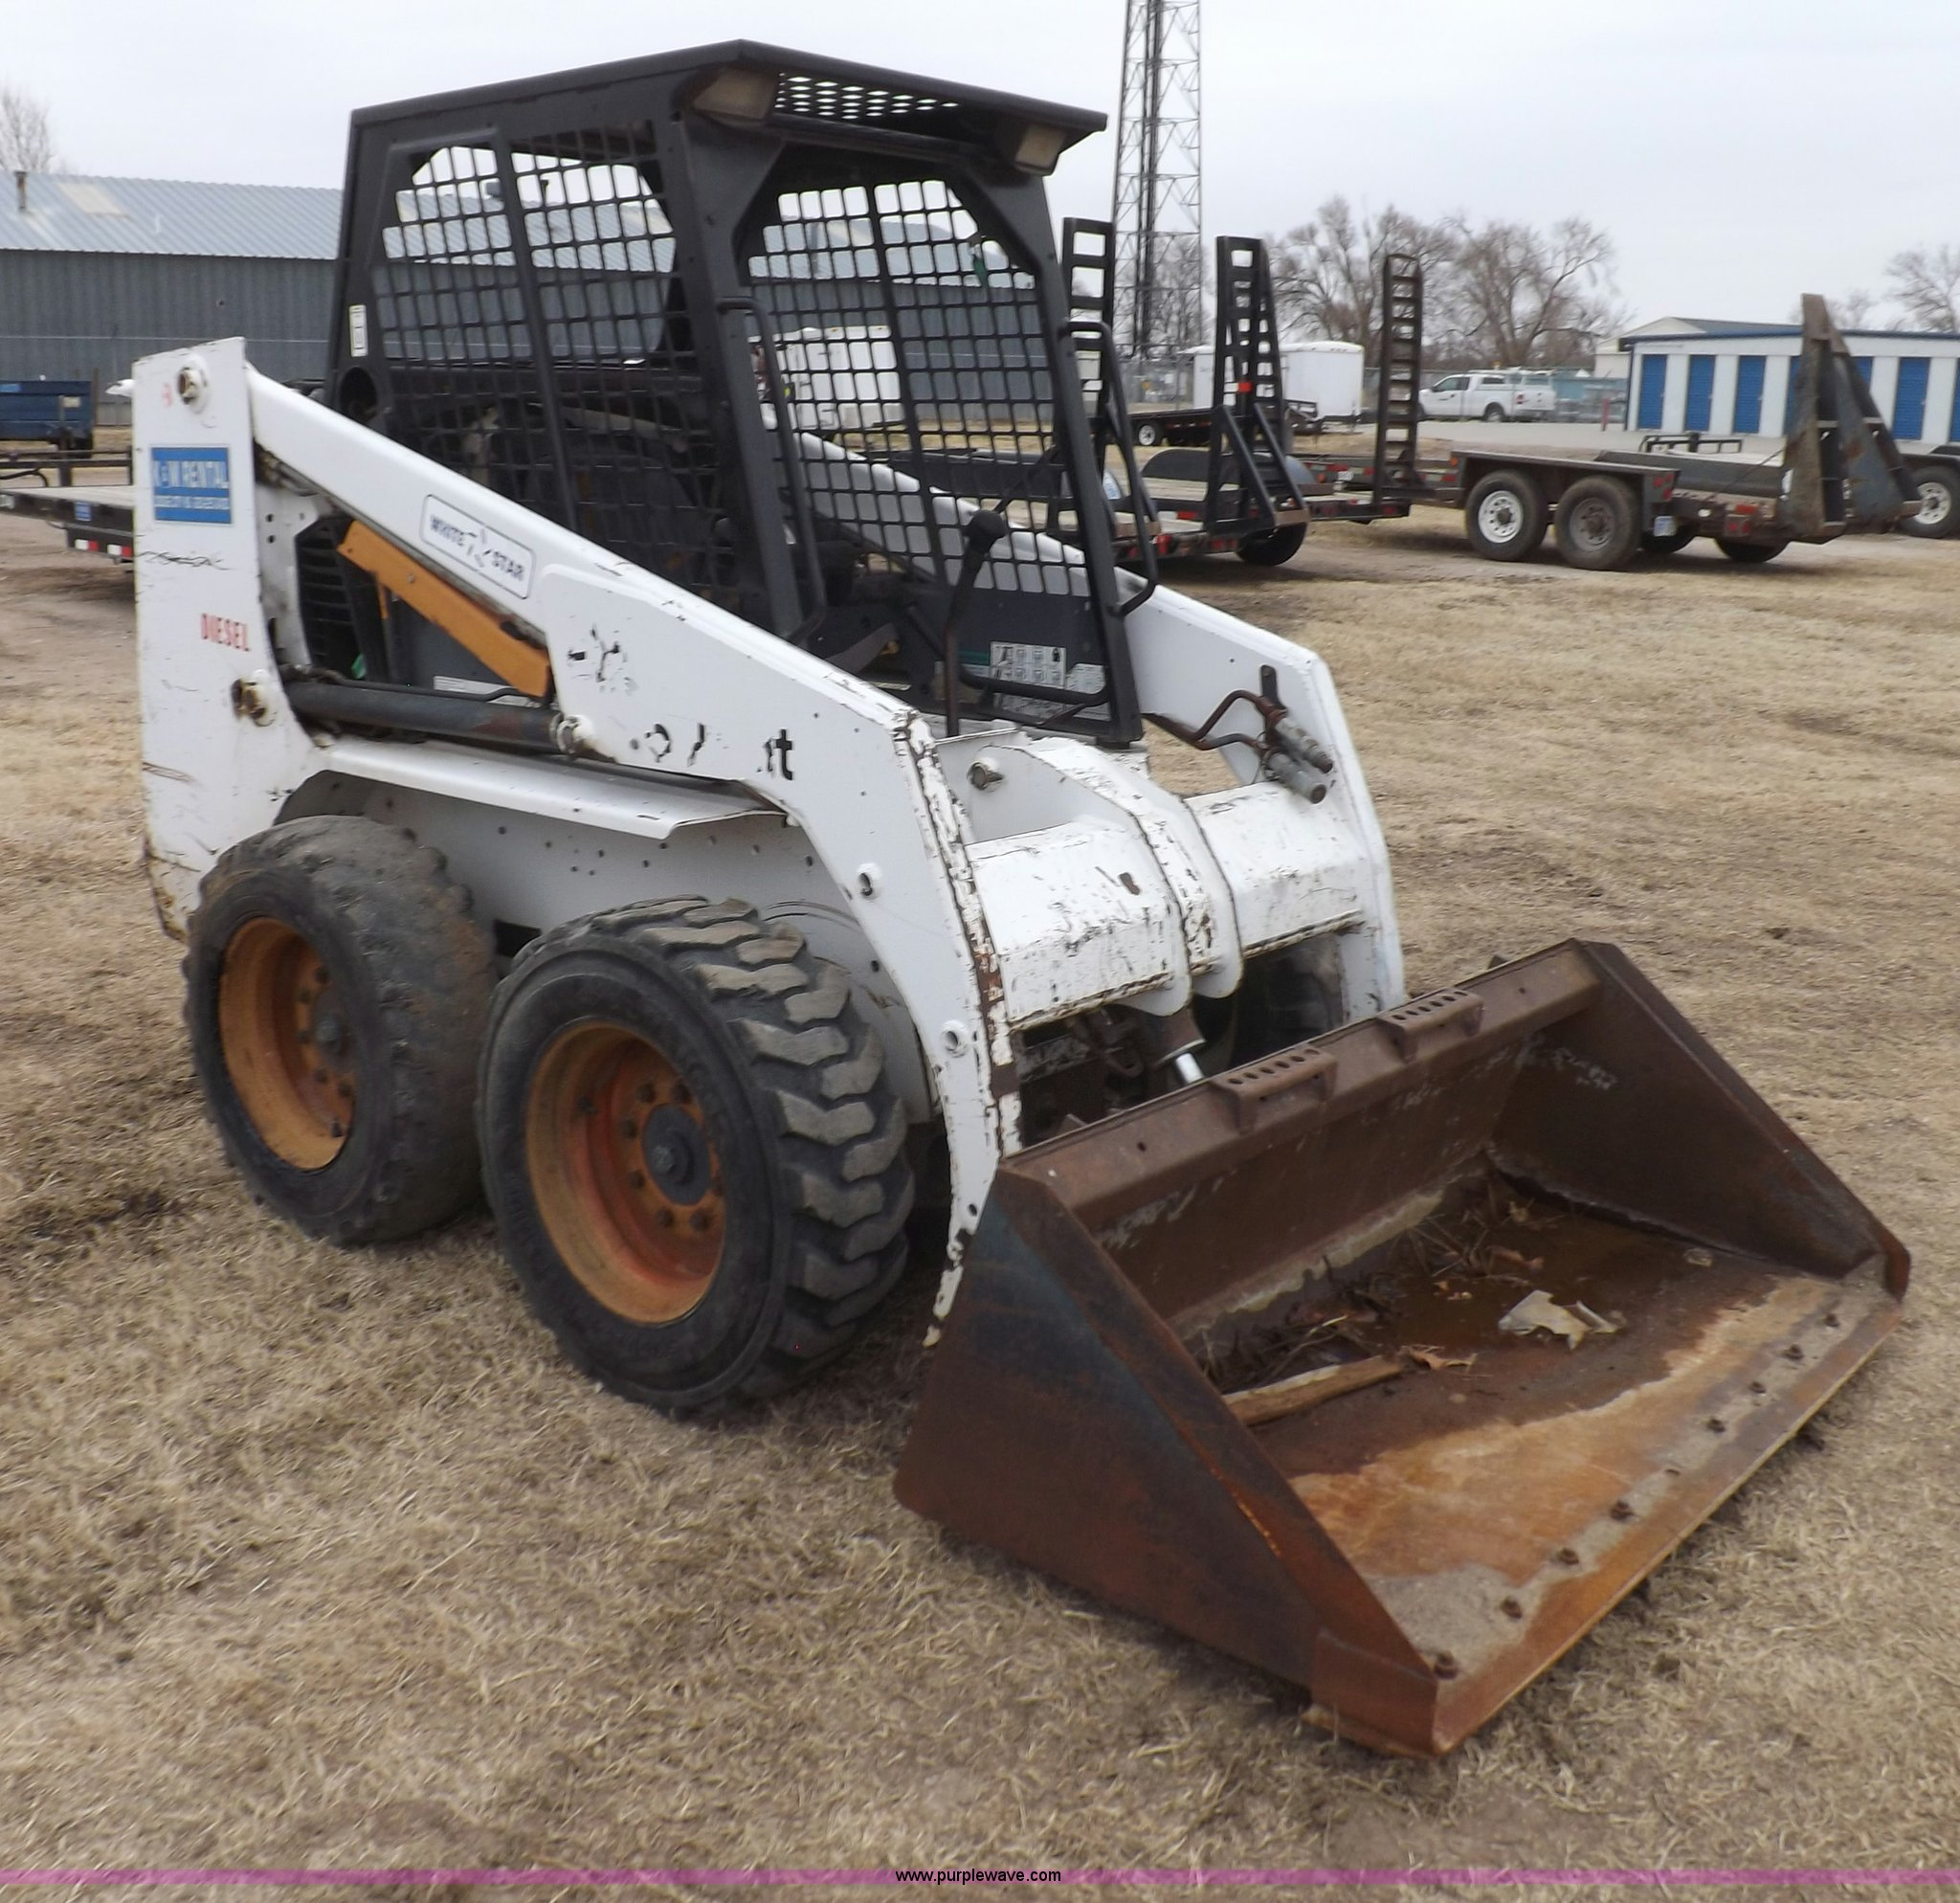 1995 Bobcat 753 Skid Steer Item I9116 Sold March 27 Con